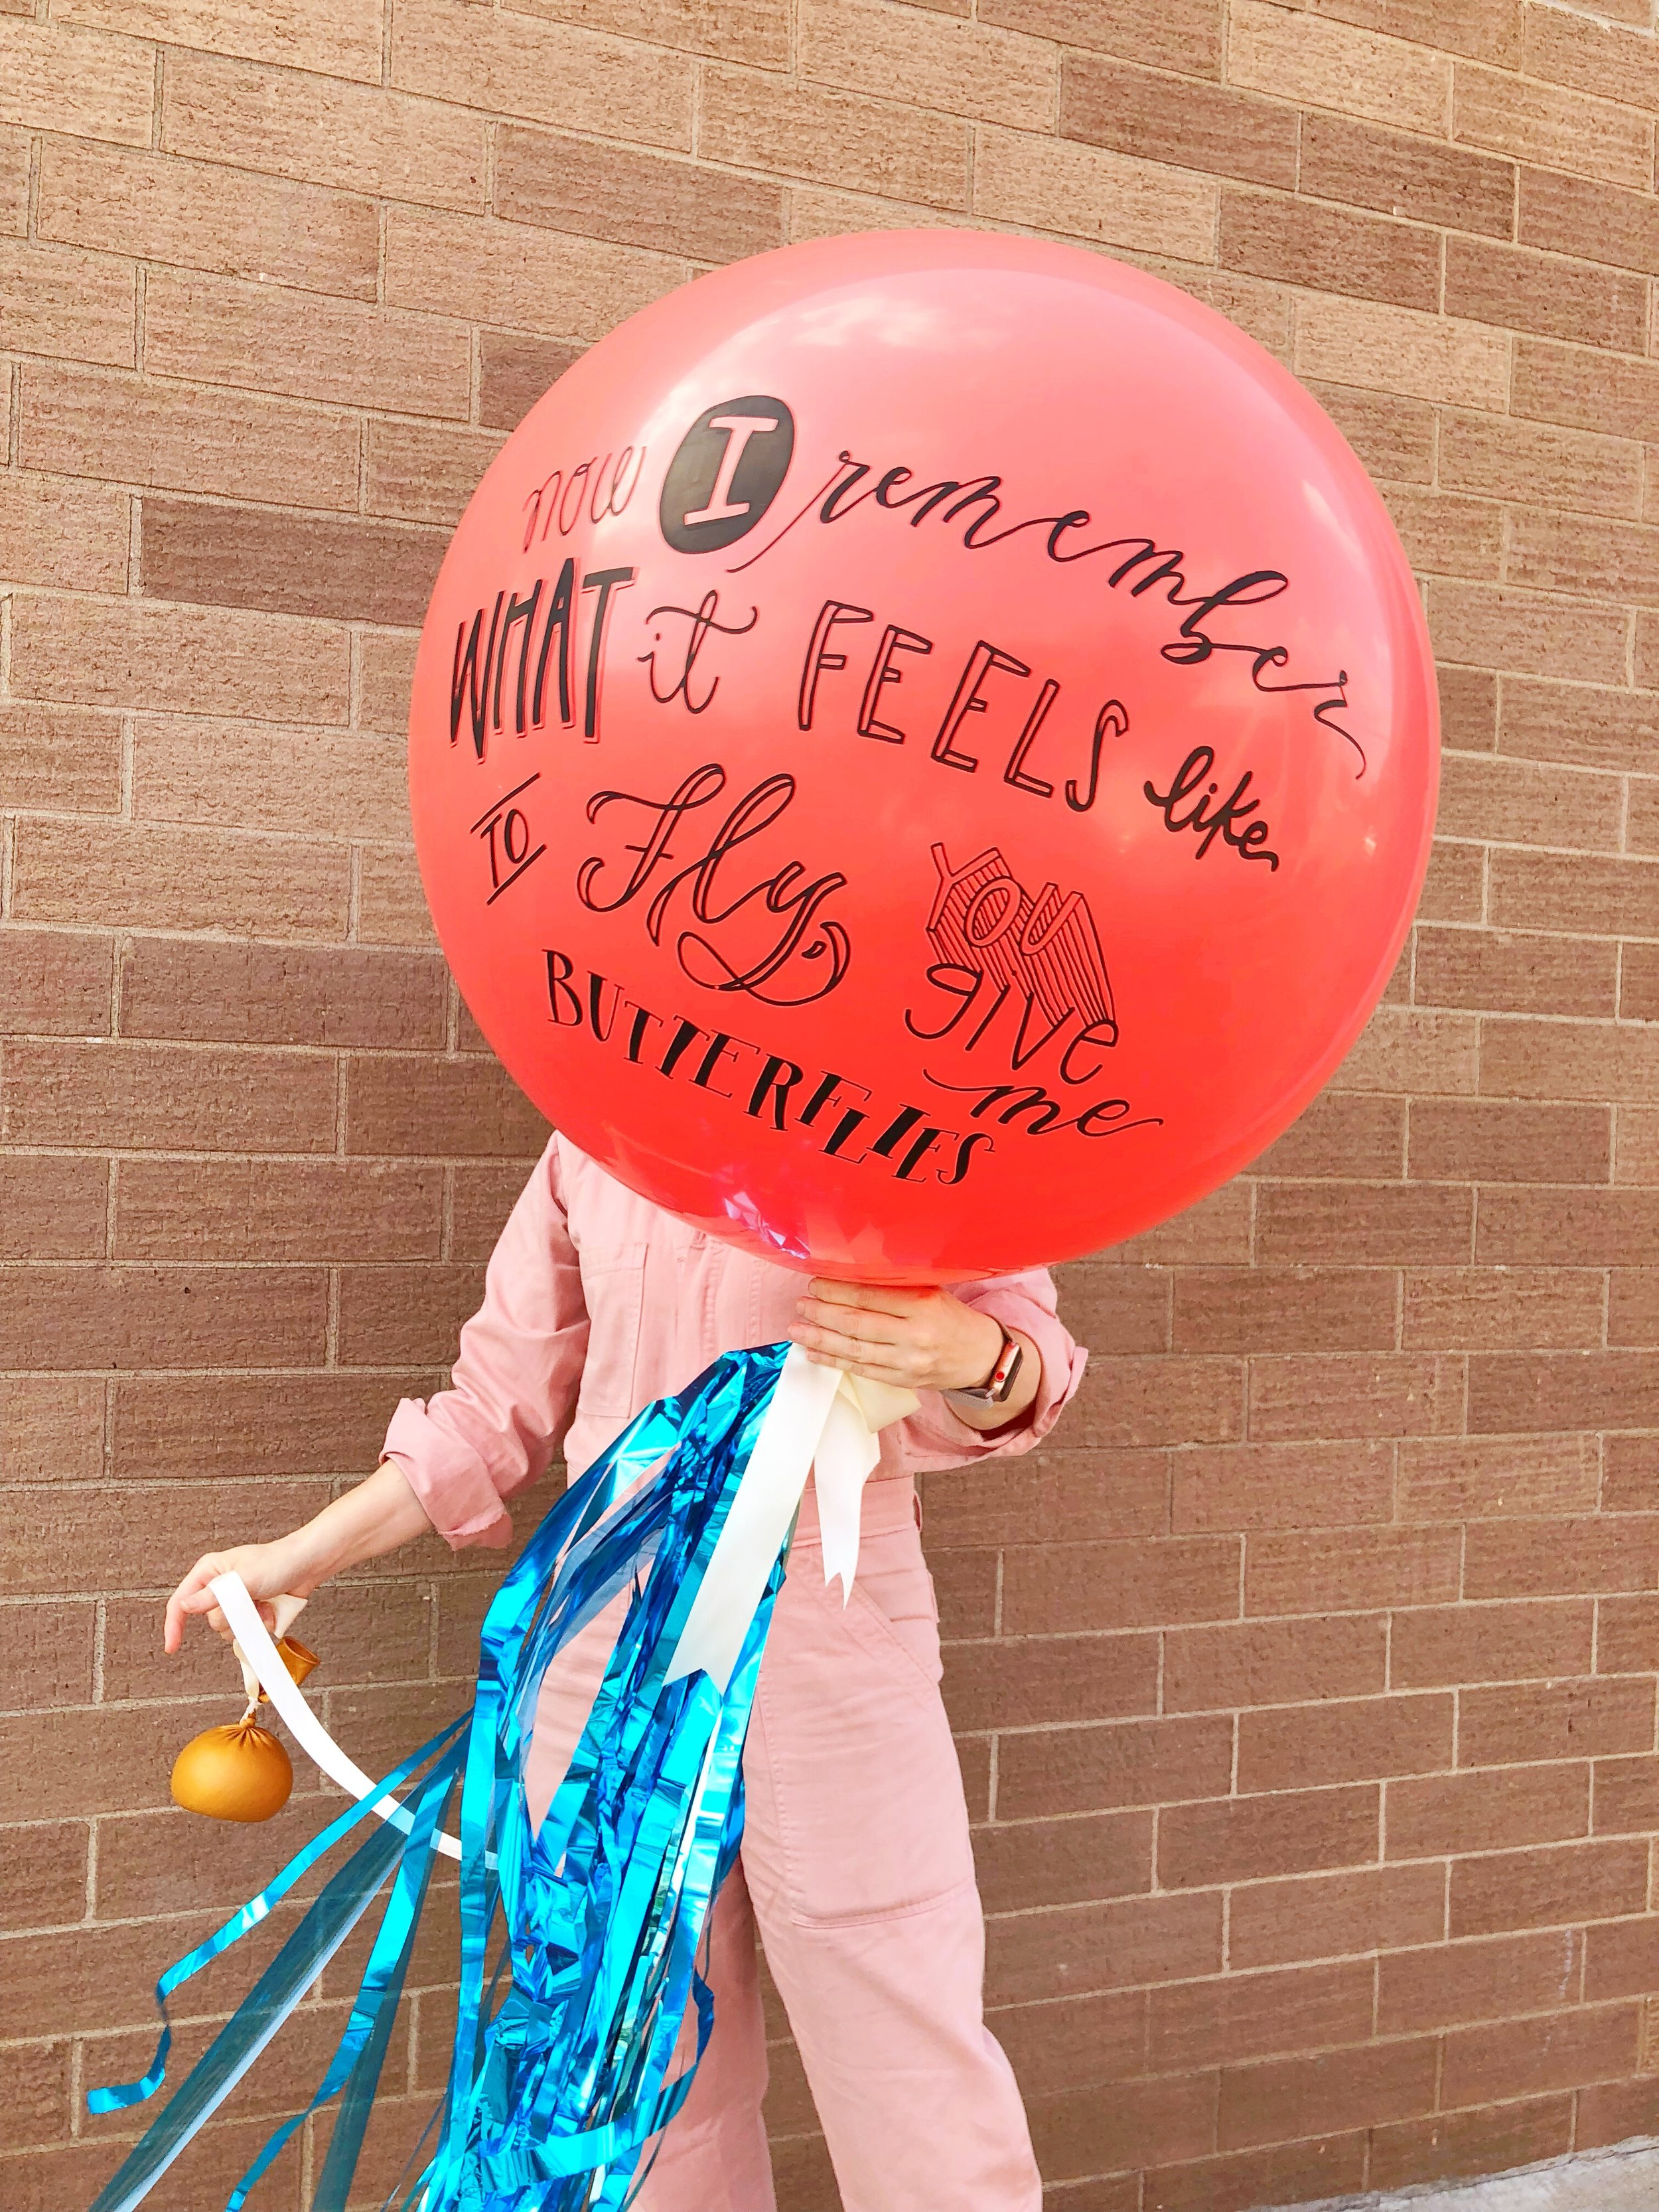 vroom_vroom_balloon_deluxe_hand_lettered_calligraphy_kacey_musgraves+coral.JPG